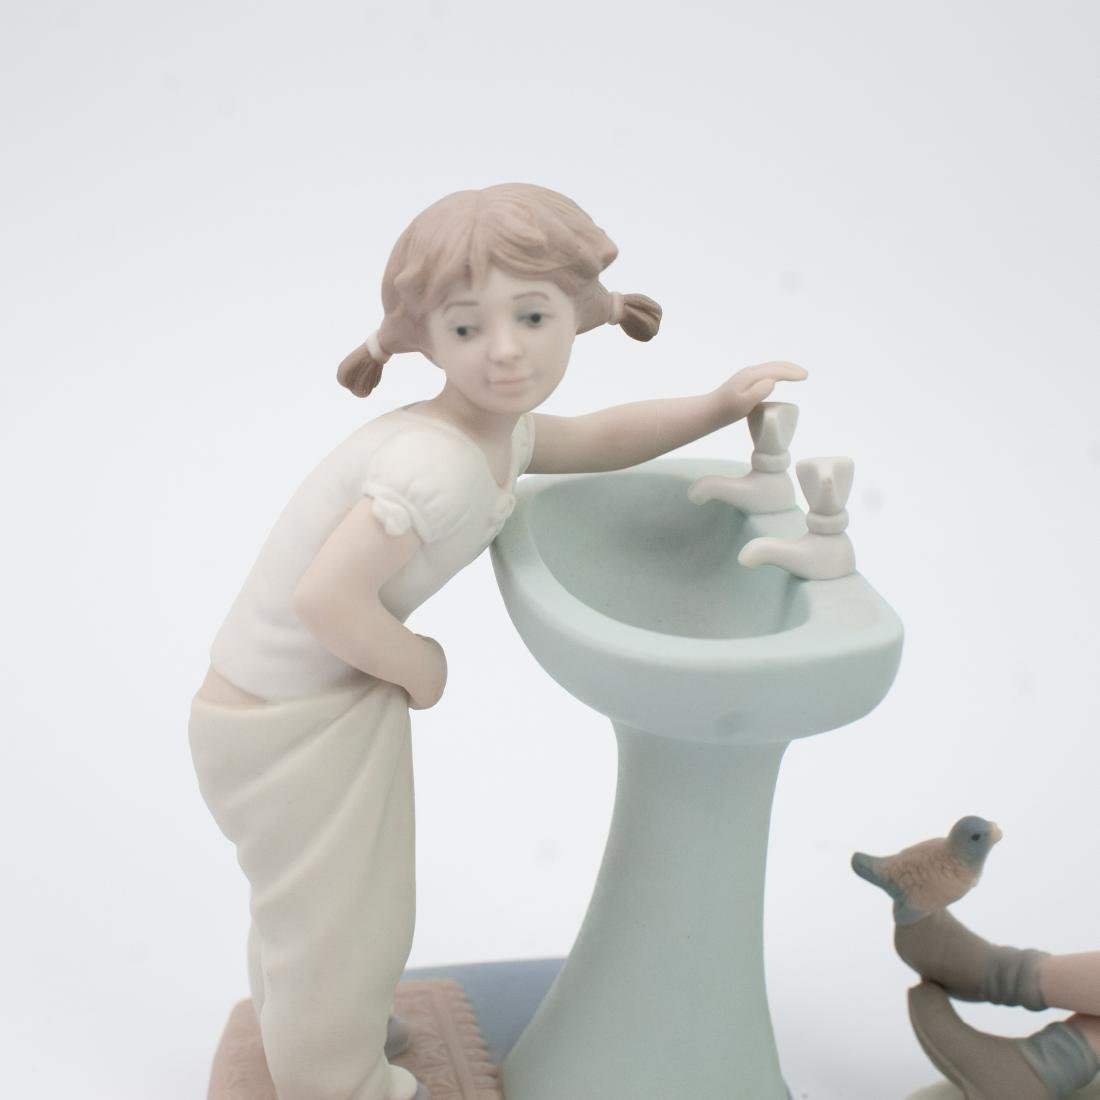 Lot of Two (2) Lladro Porcelain Figurines - 2